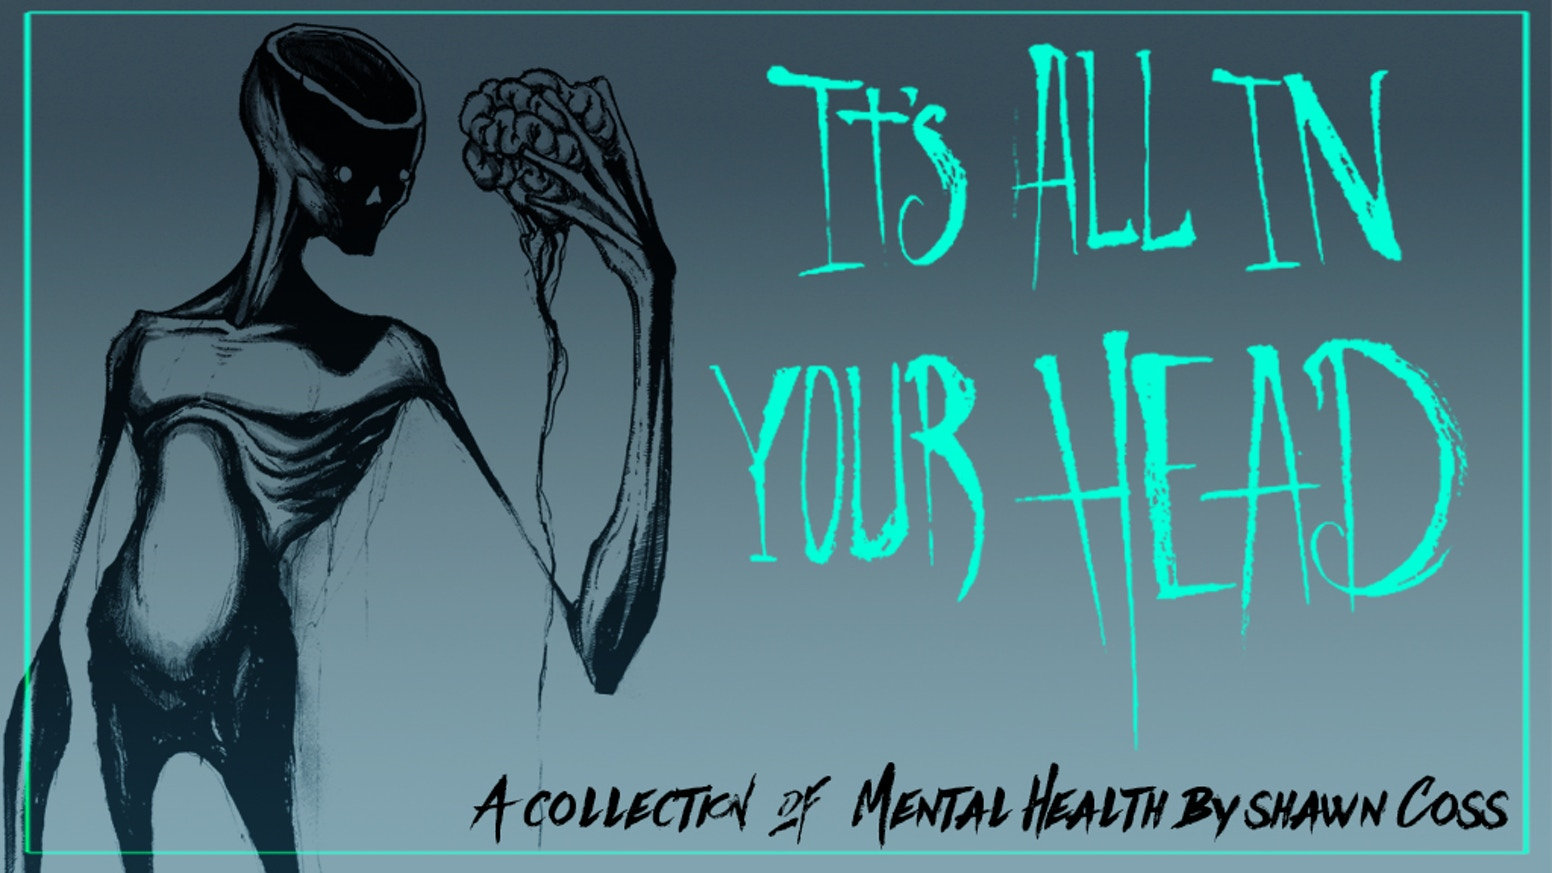 It's All in Your Head is the first ever collection of my popular Intkober series along with a glimpse into my art and depression.